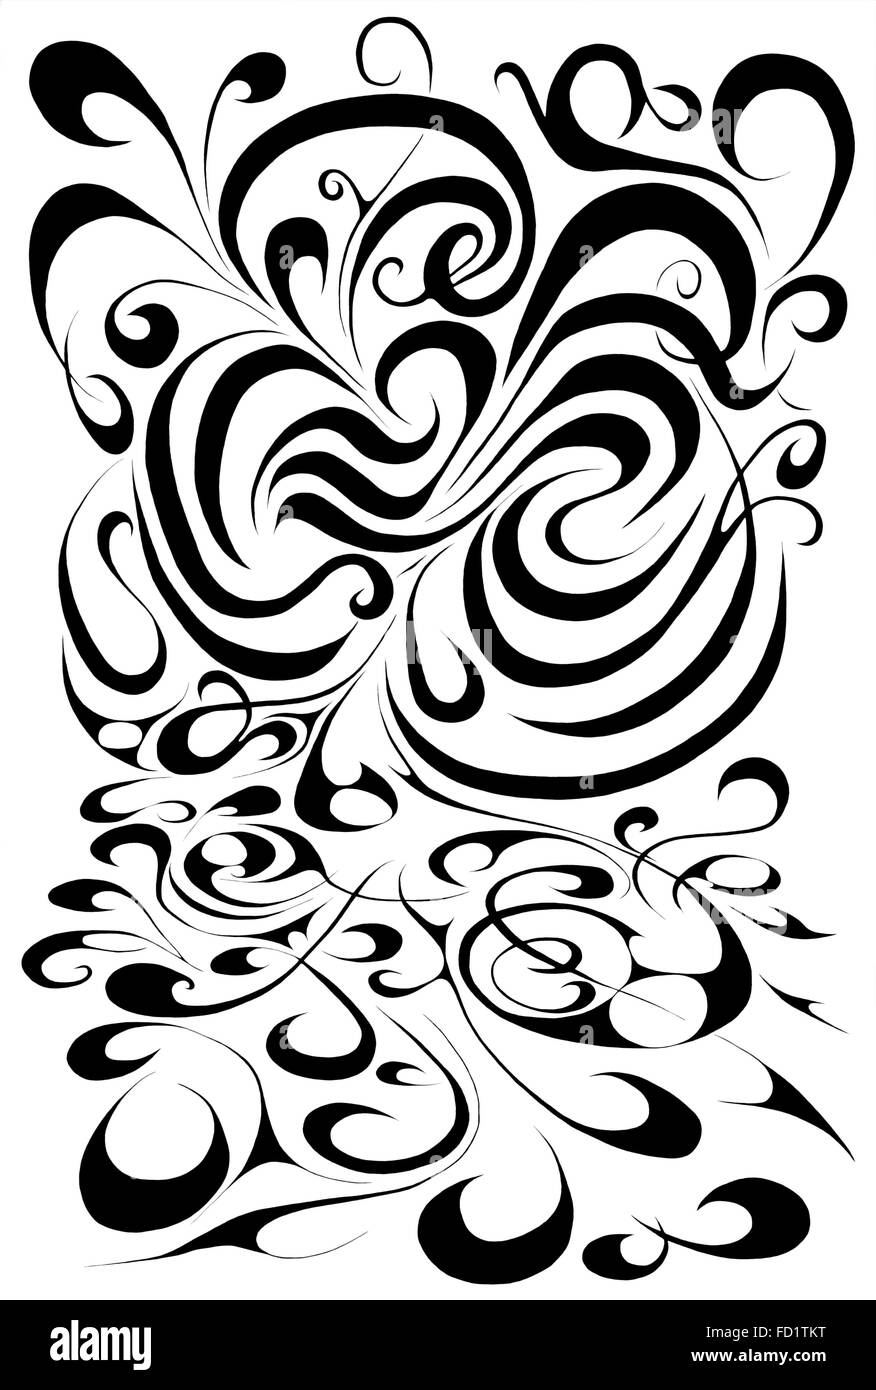 Swirly, Géant, noir et blanc doodle Photo Stock